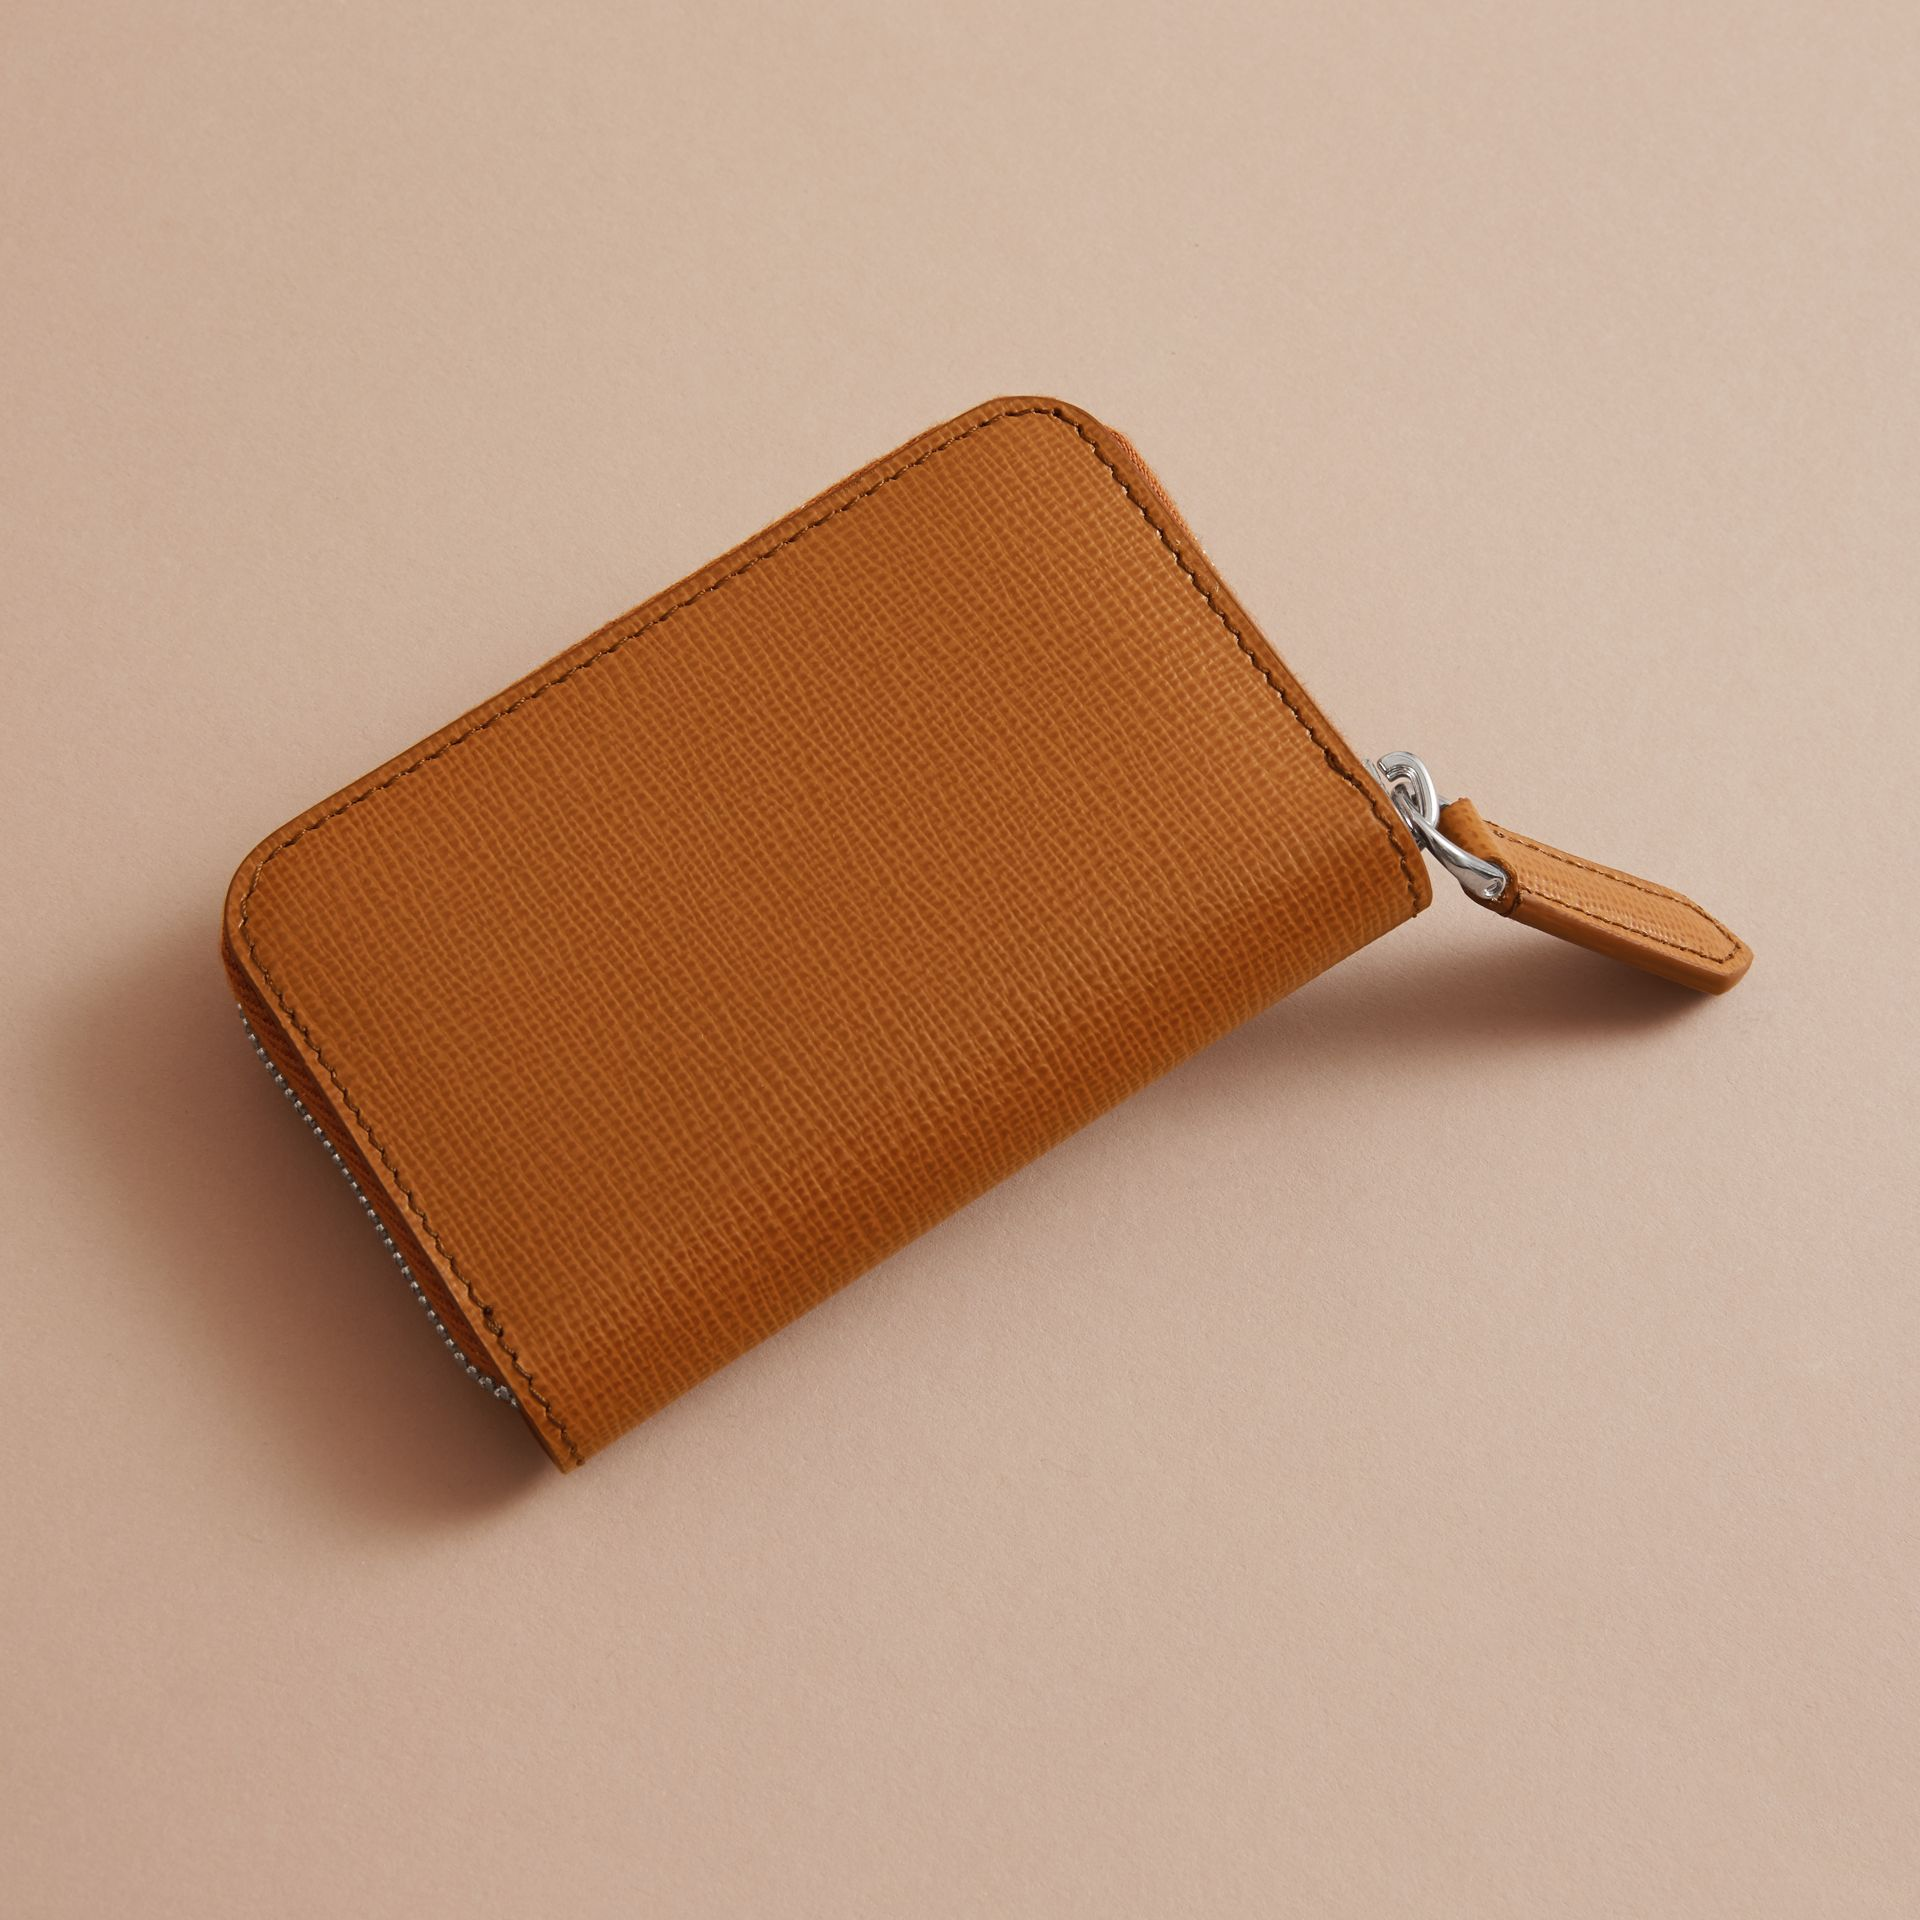 London Leather Ziparound Coin Case in Tan | Burberry - gallery image 4